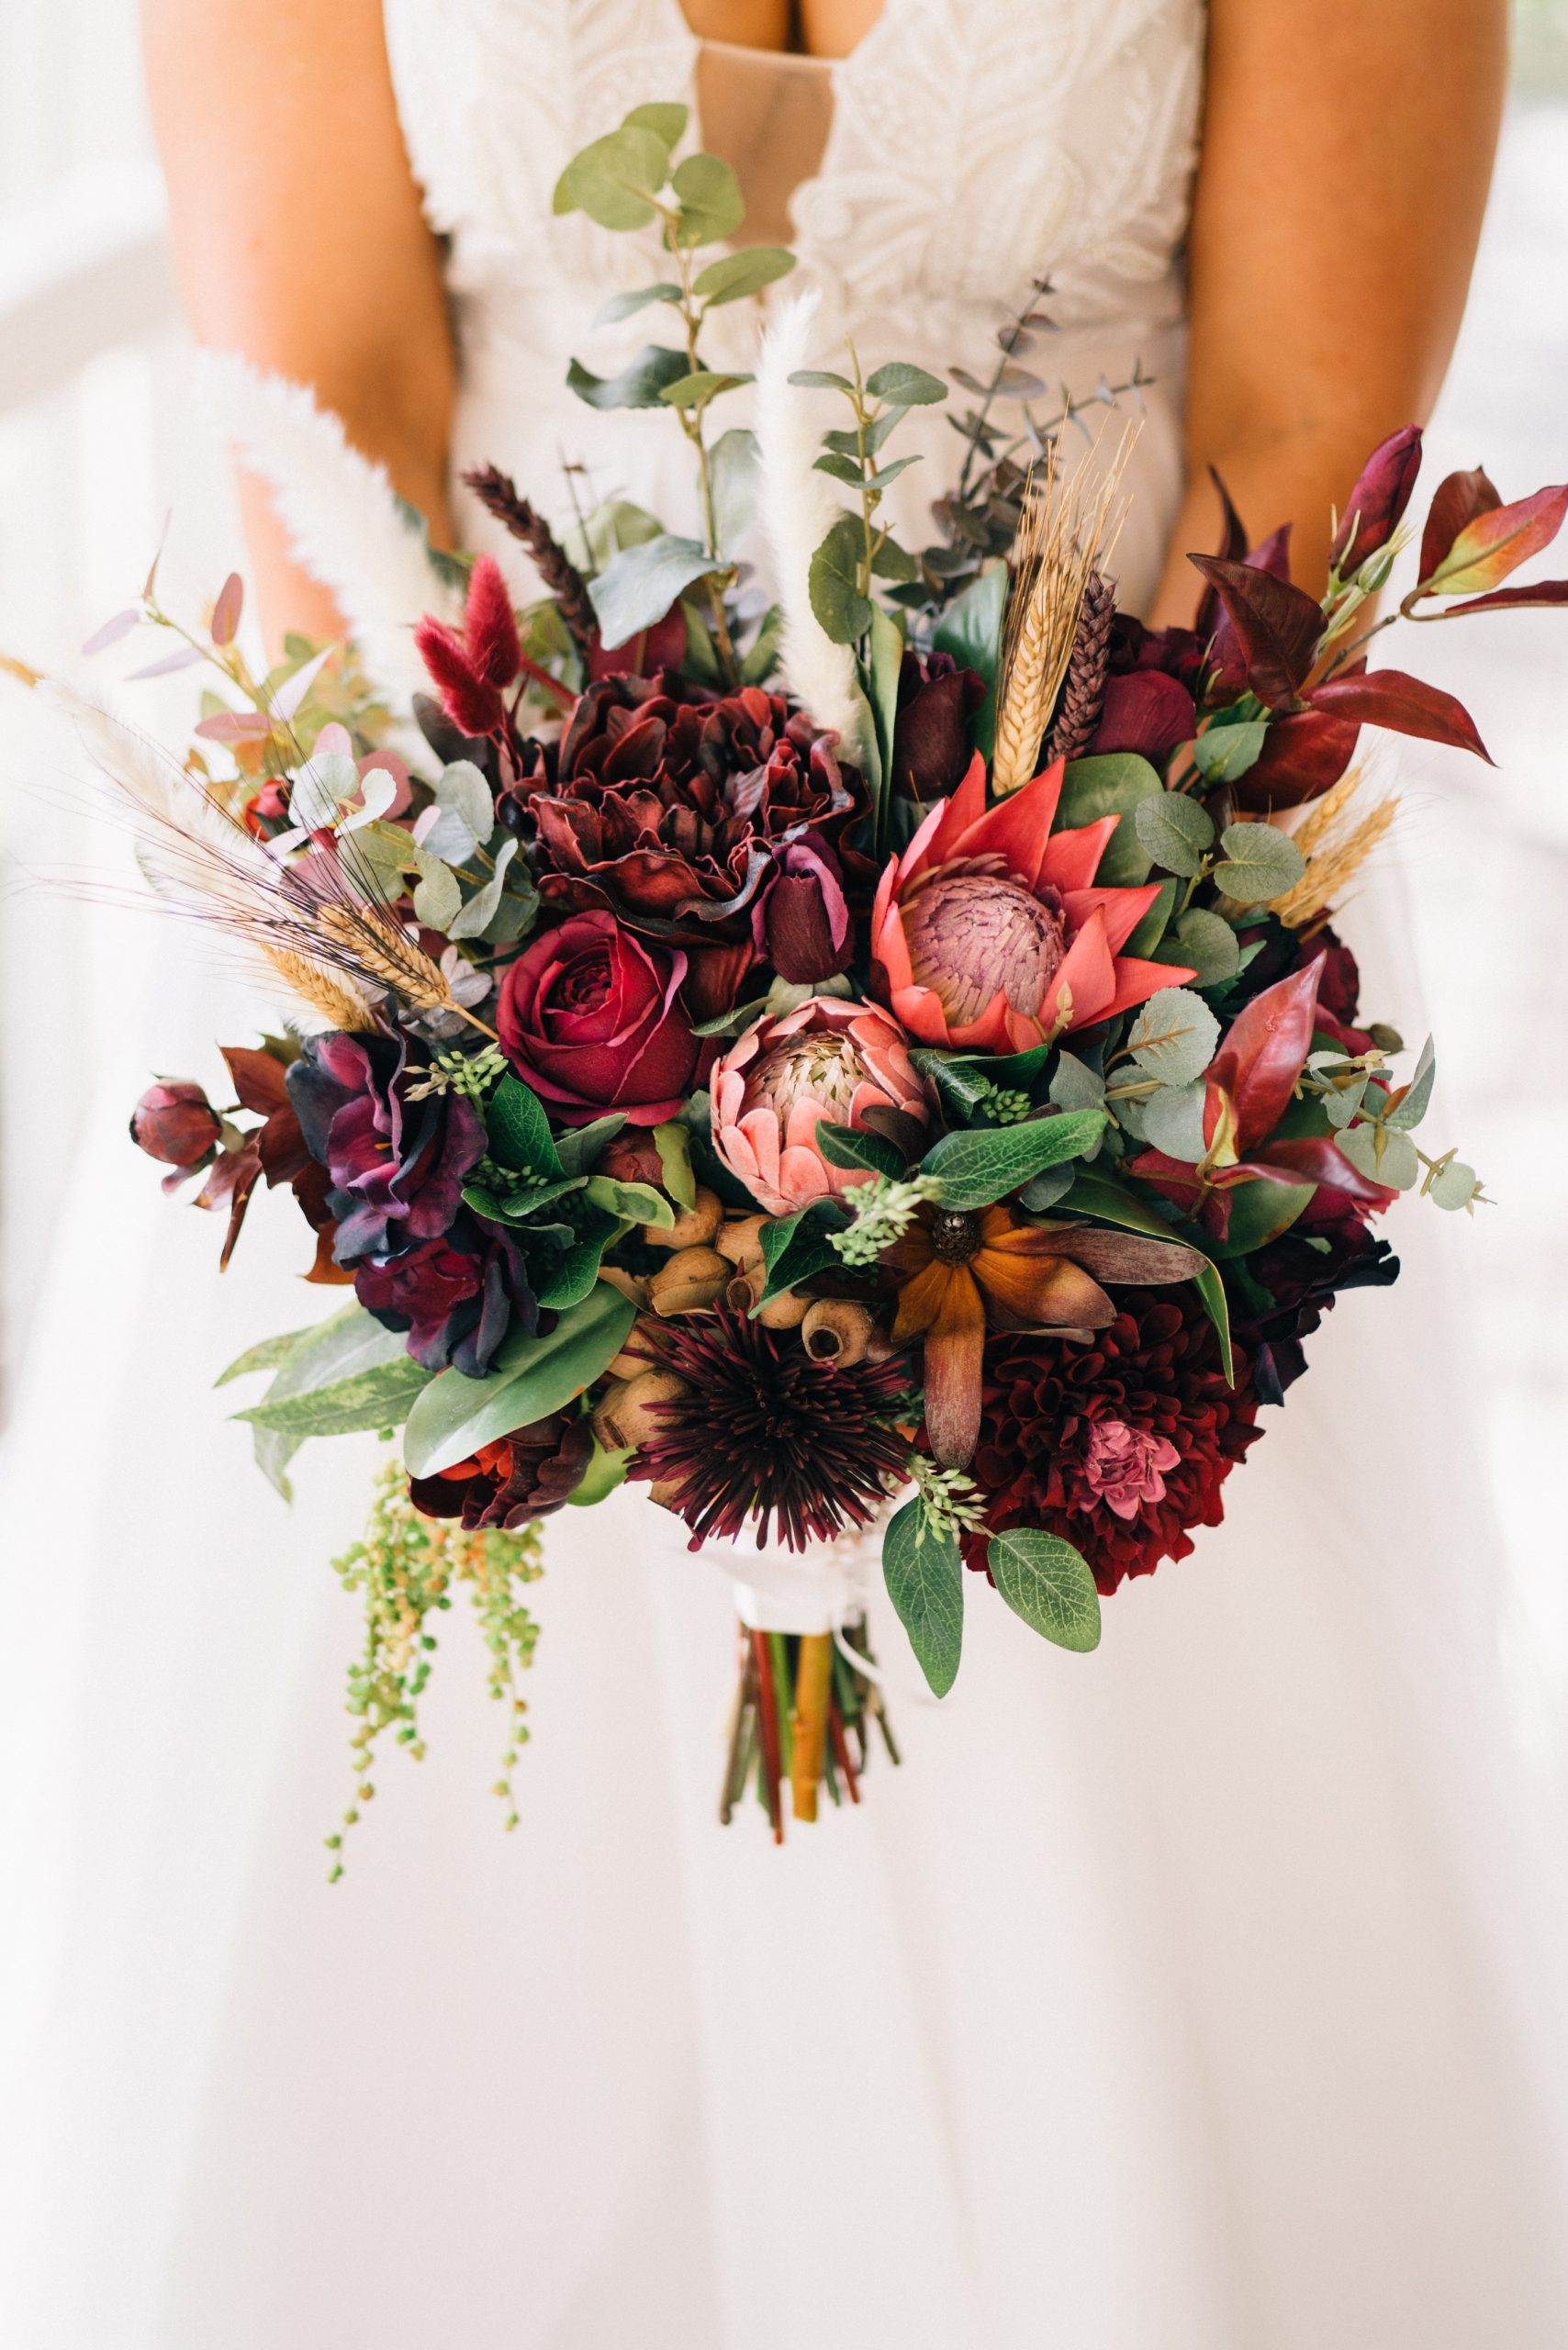 brides flower bouquet before the wedding at brooklyn farm